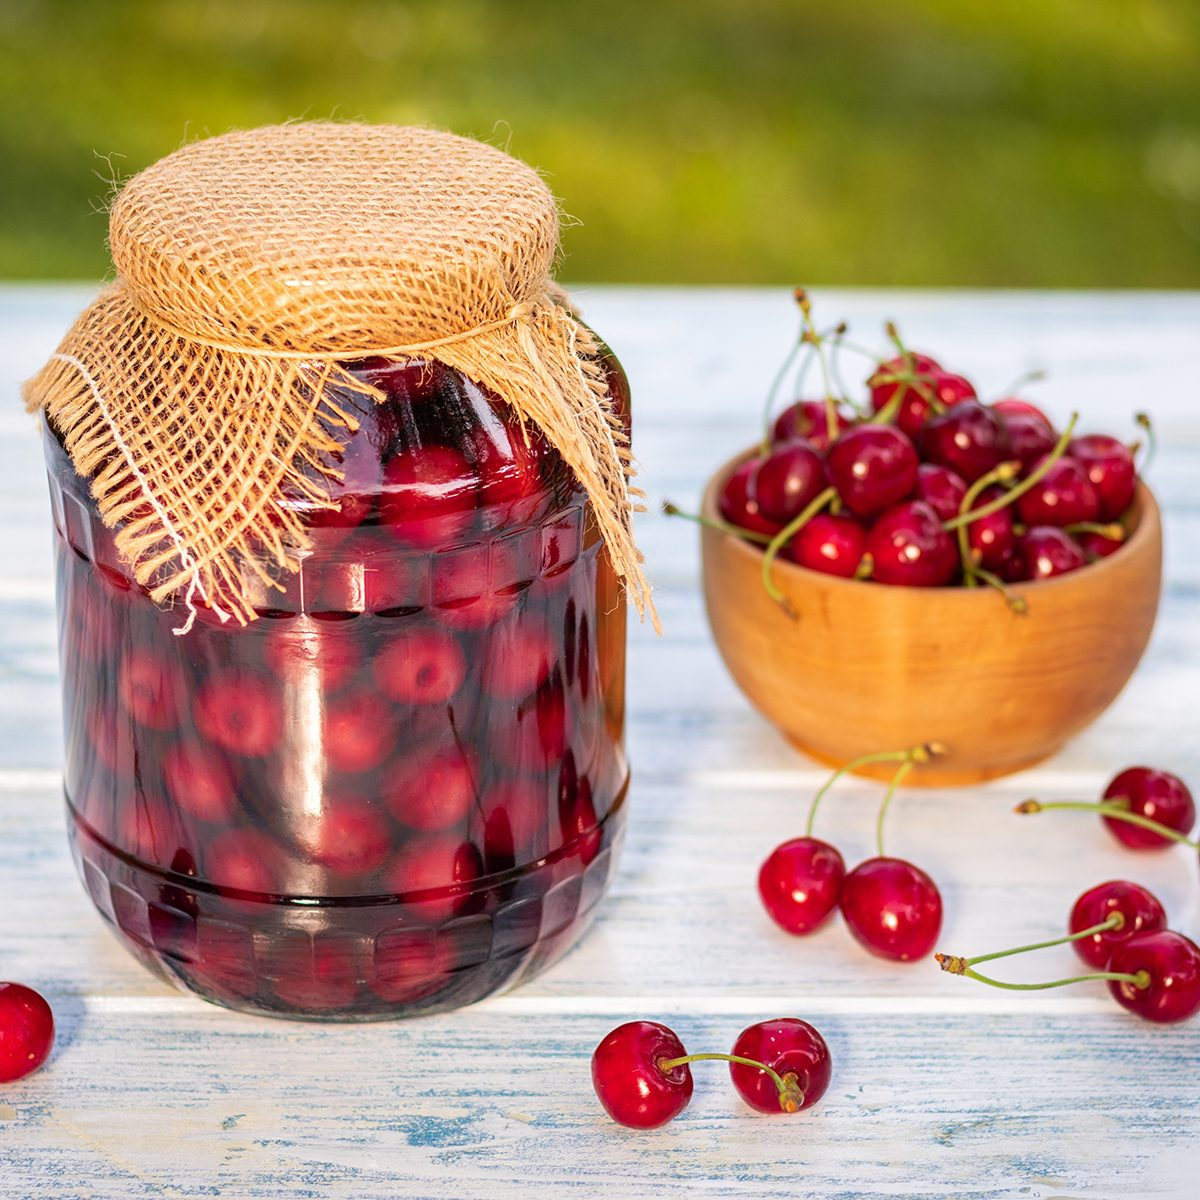 Homemade preserved organic fruits in glass jar. Selective focus, blurry background